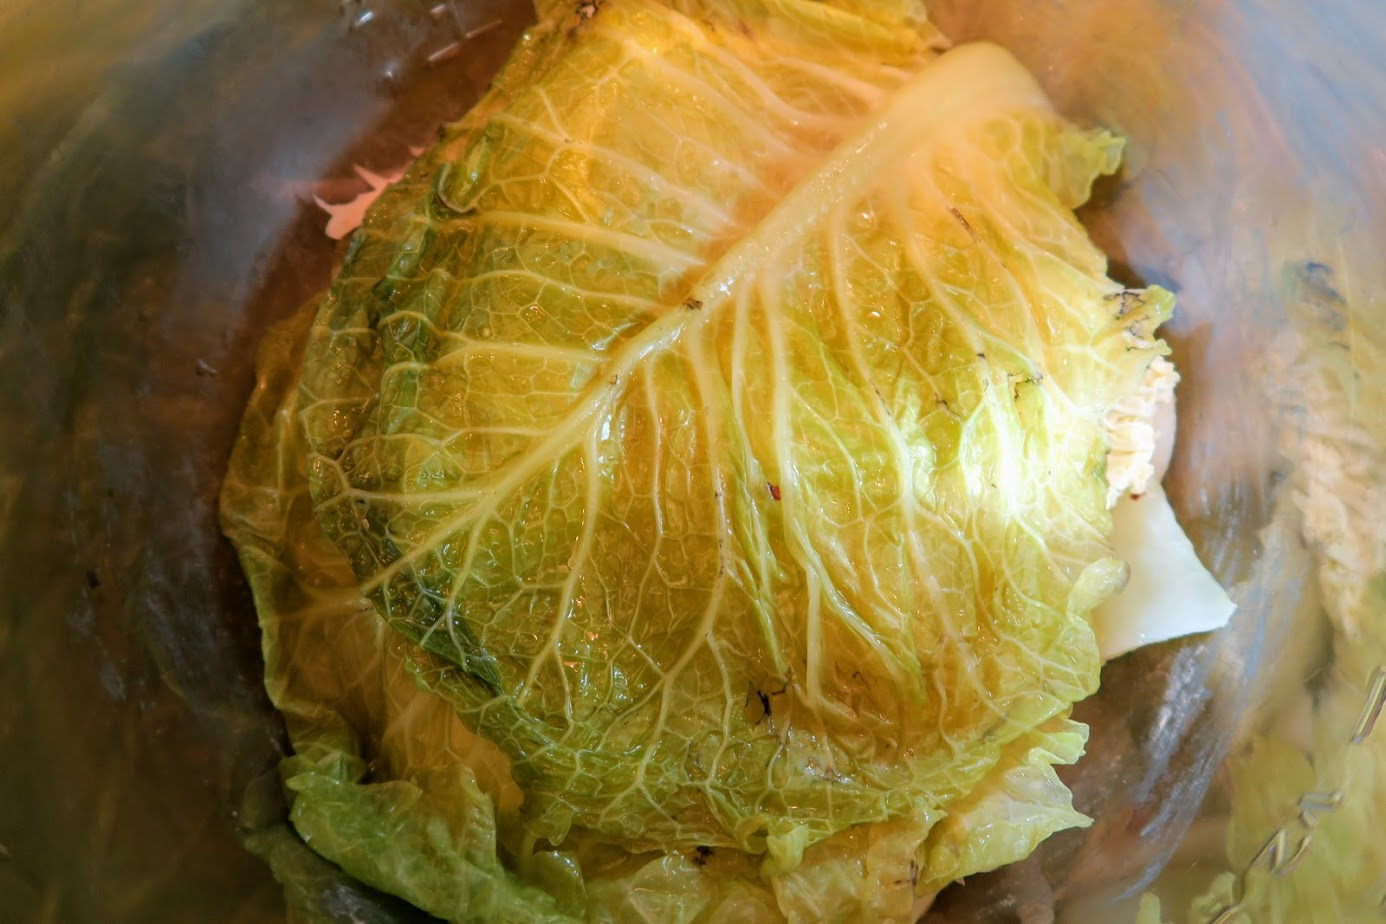 Two large cabbage leaves form the base and cover the scraps below.